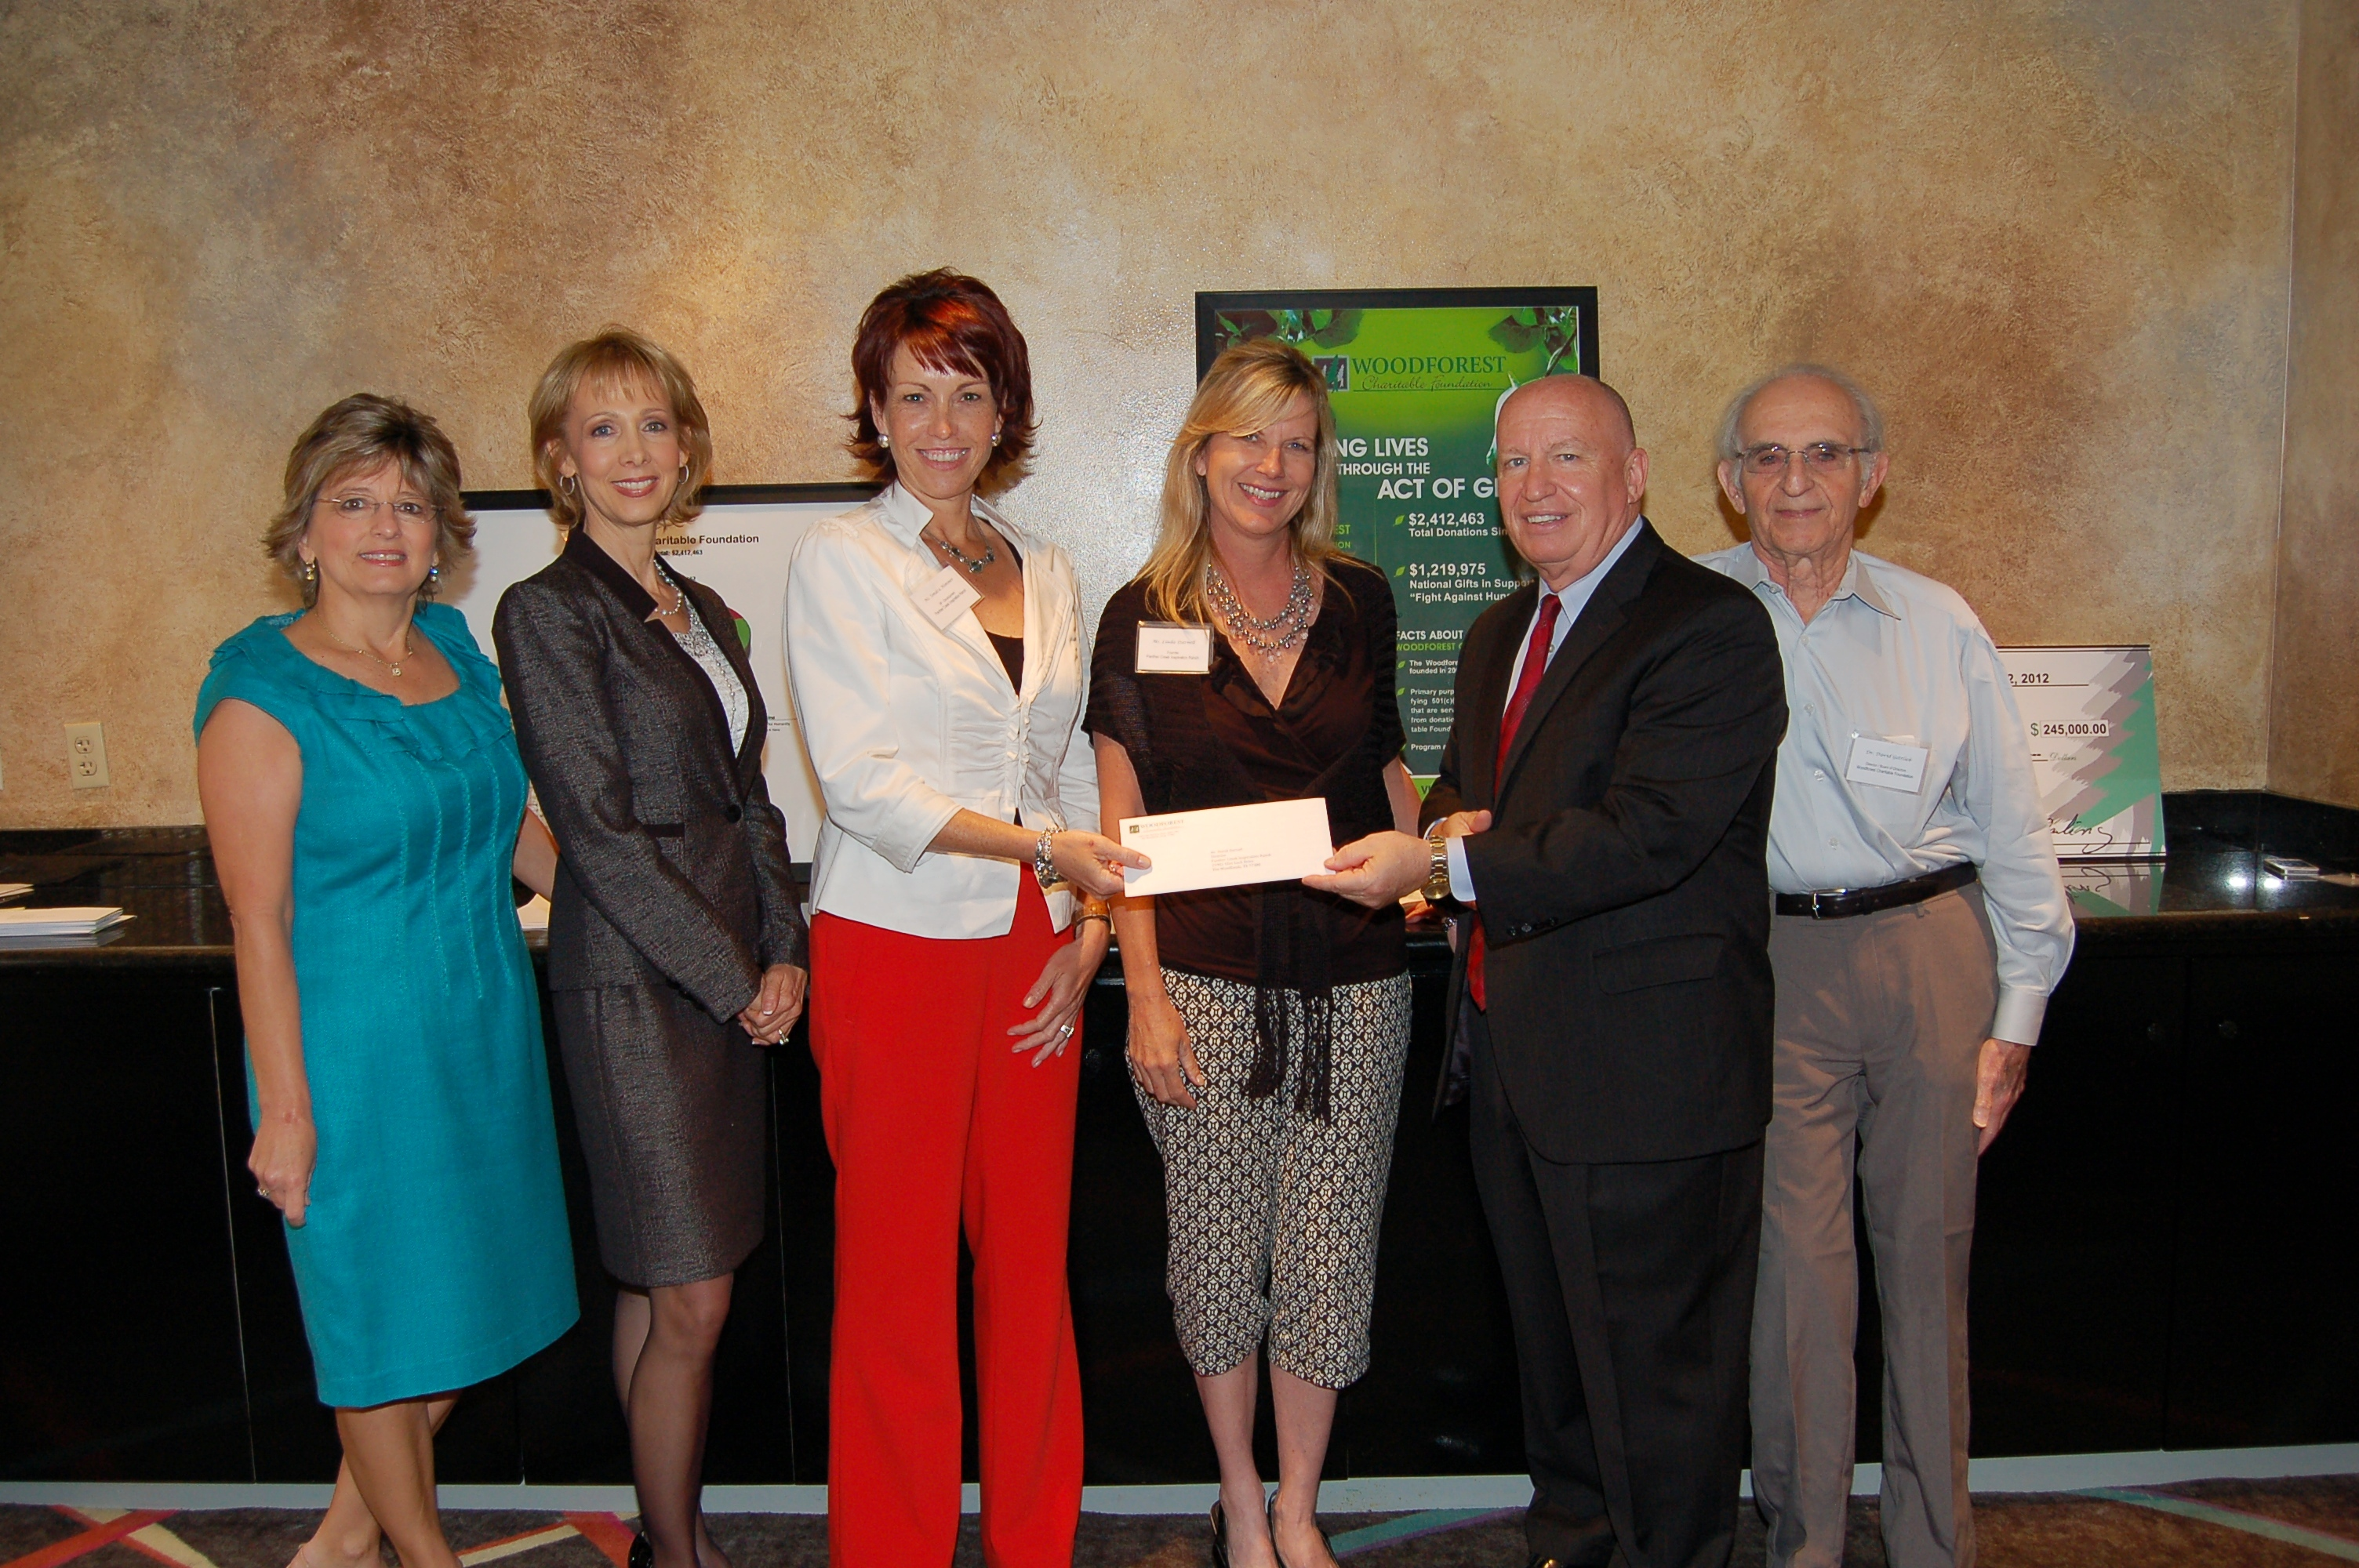 Panther Creek Inspiration Ranch receives $2,500 donation from Woodforest Charitable Foundation.